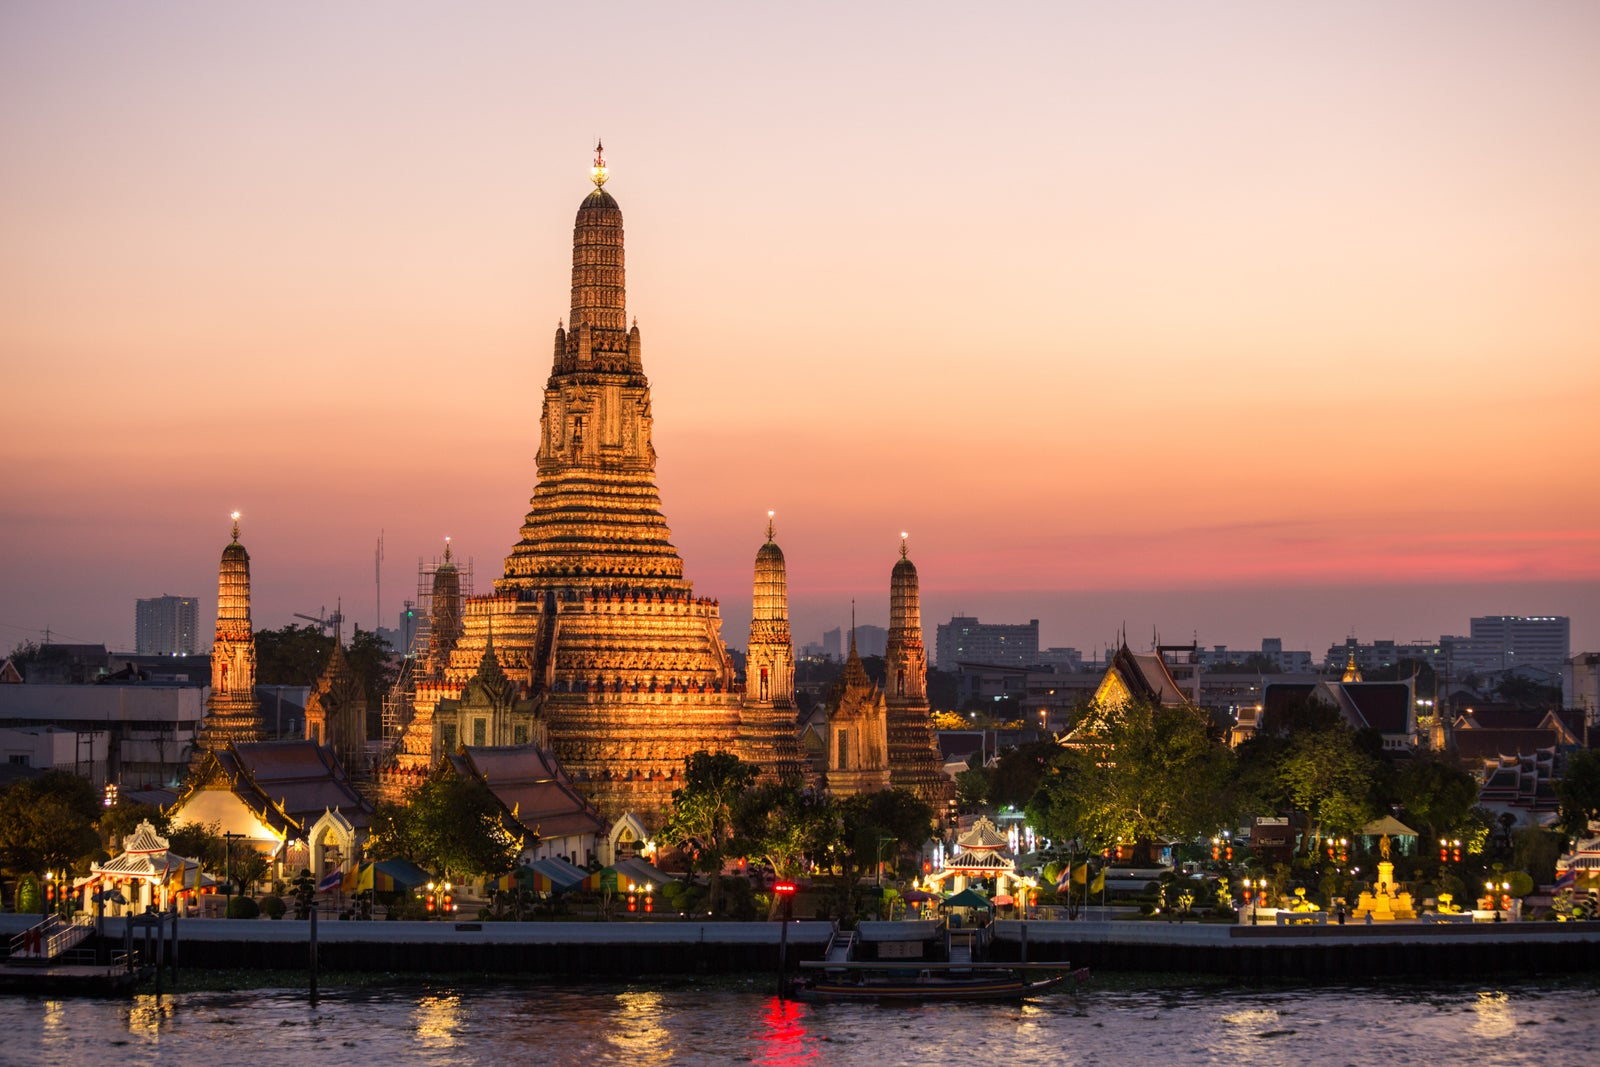 Thailand Deal Alert: Fly business class to Bangkok for 70k miles one-way